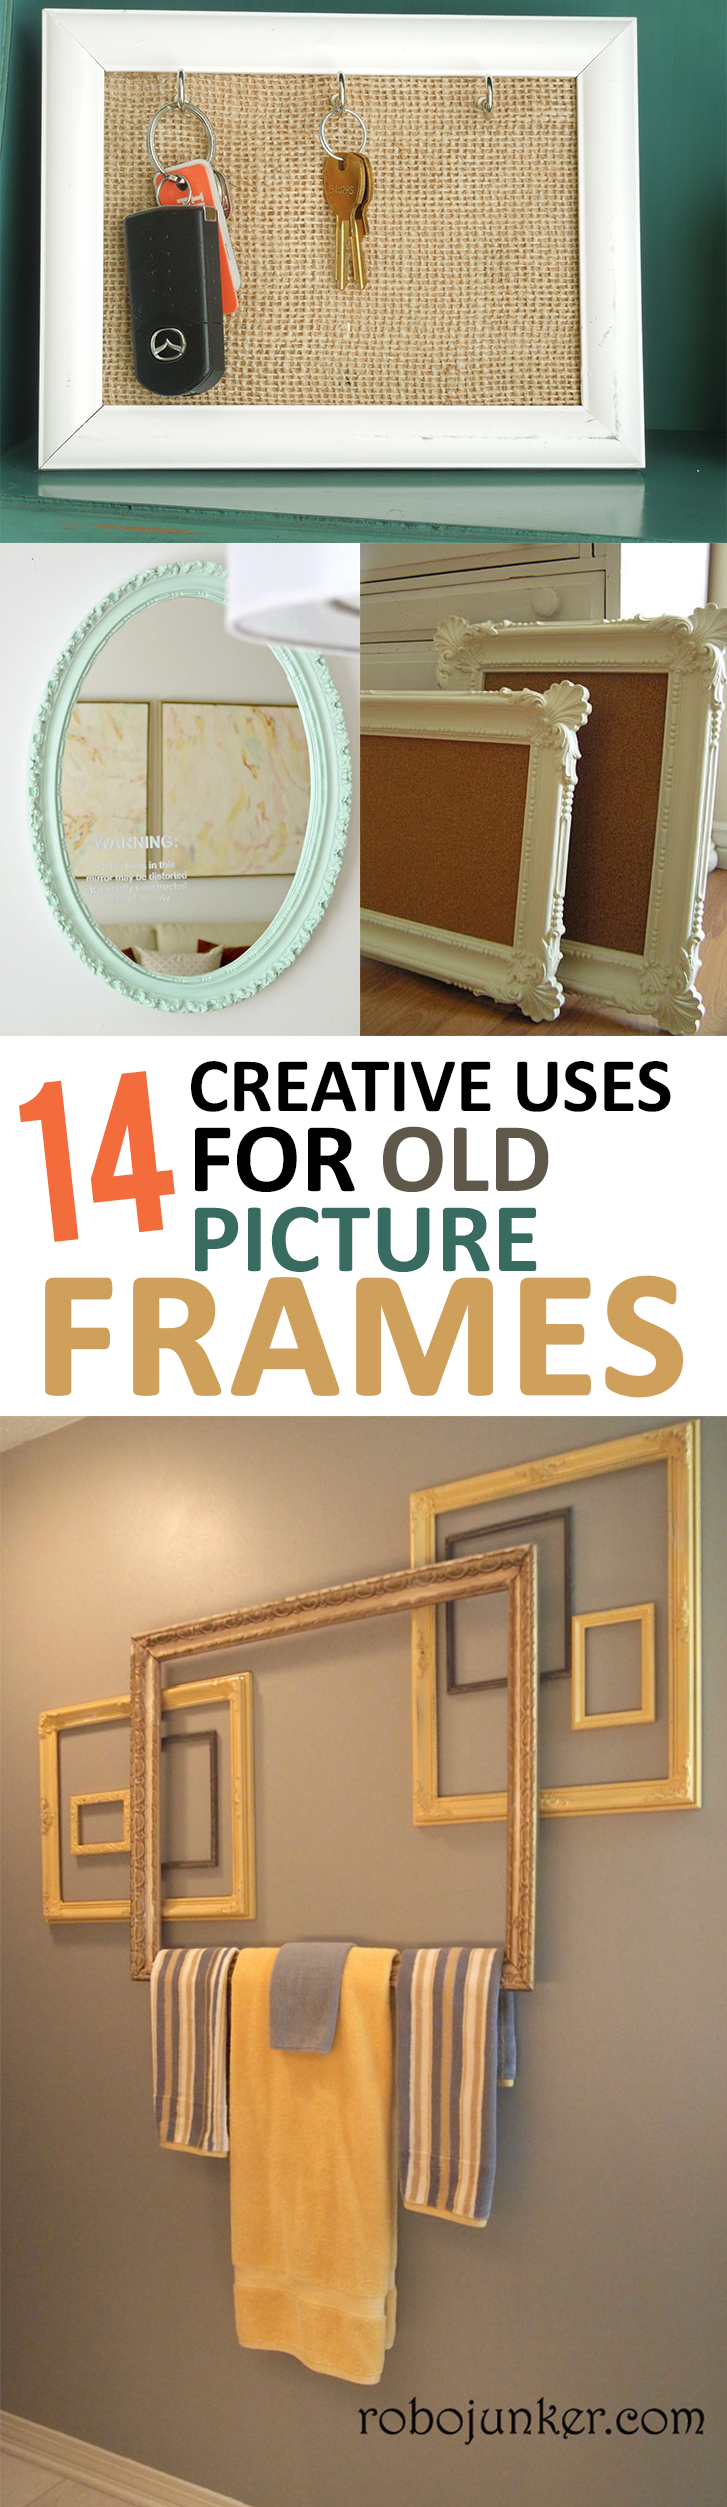 14 creative uses for old picture frames page 11 of 15